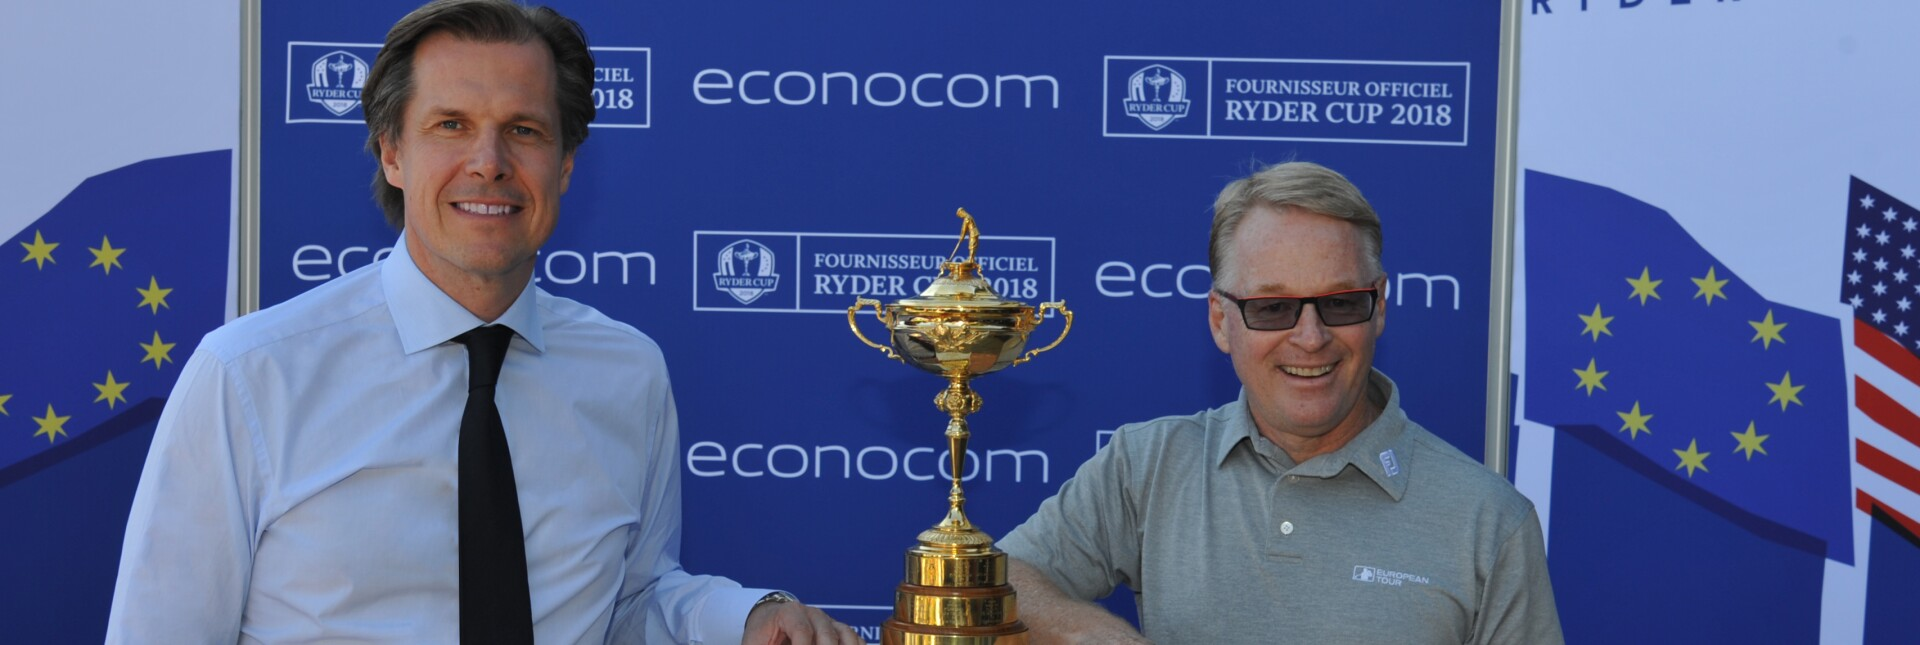 Robert Bouchard, CEO of Econocom Group and Keith Pelley CEO of the European Tour.jpg